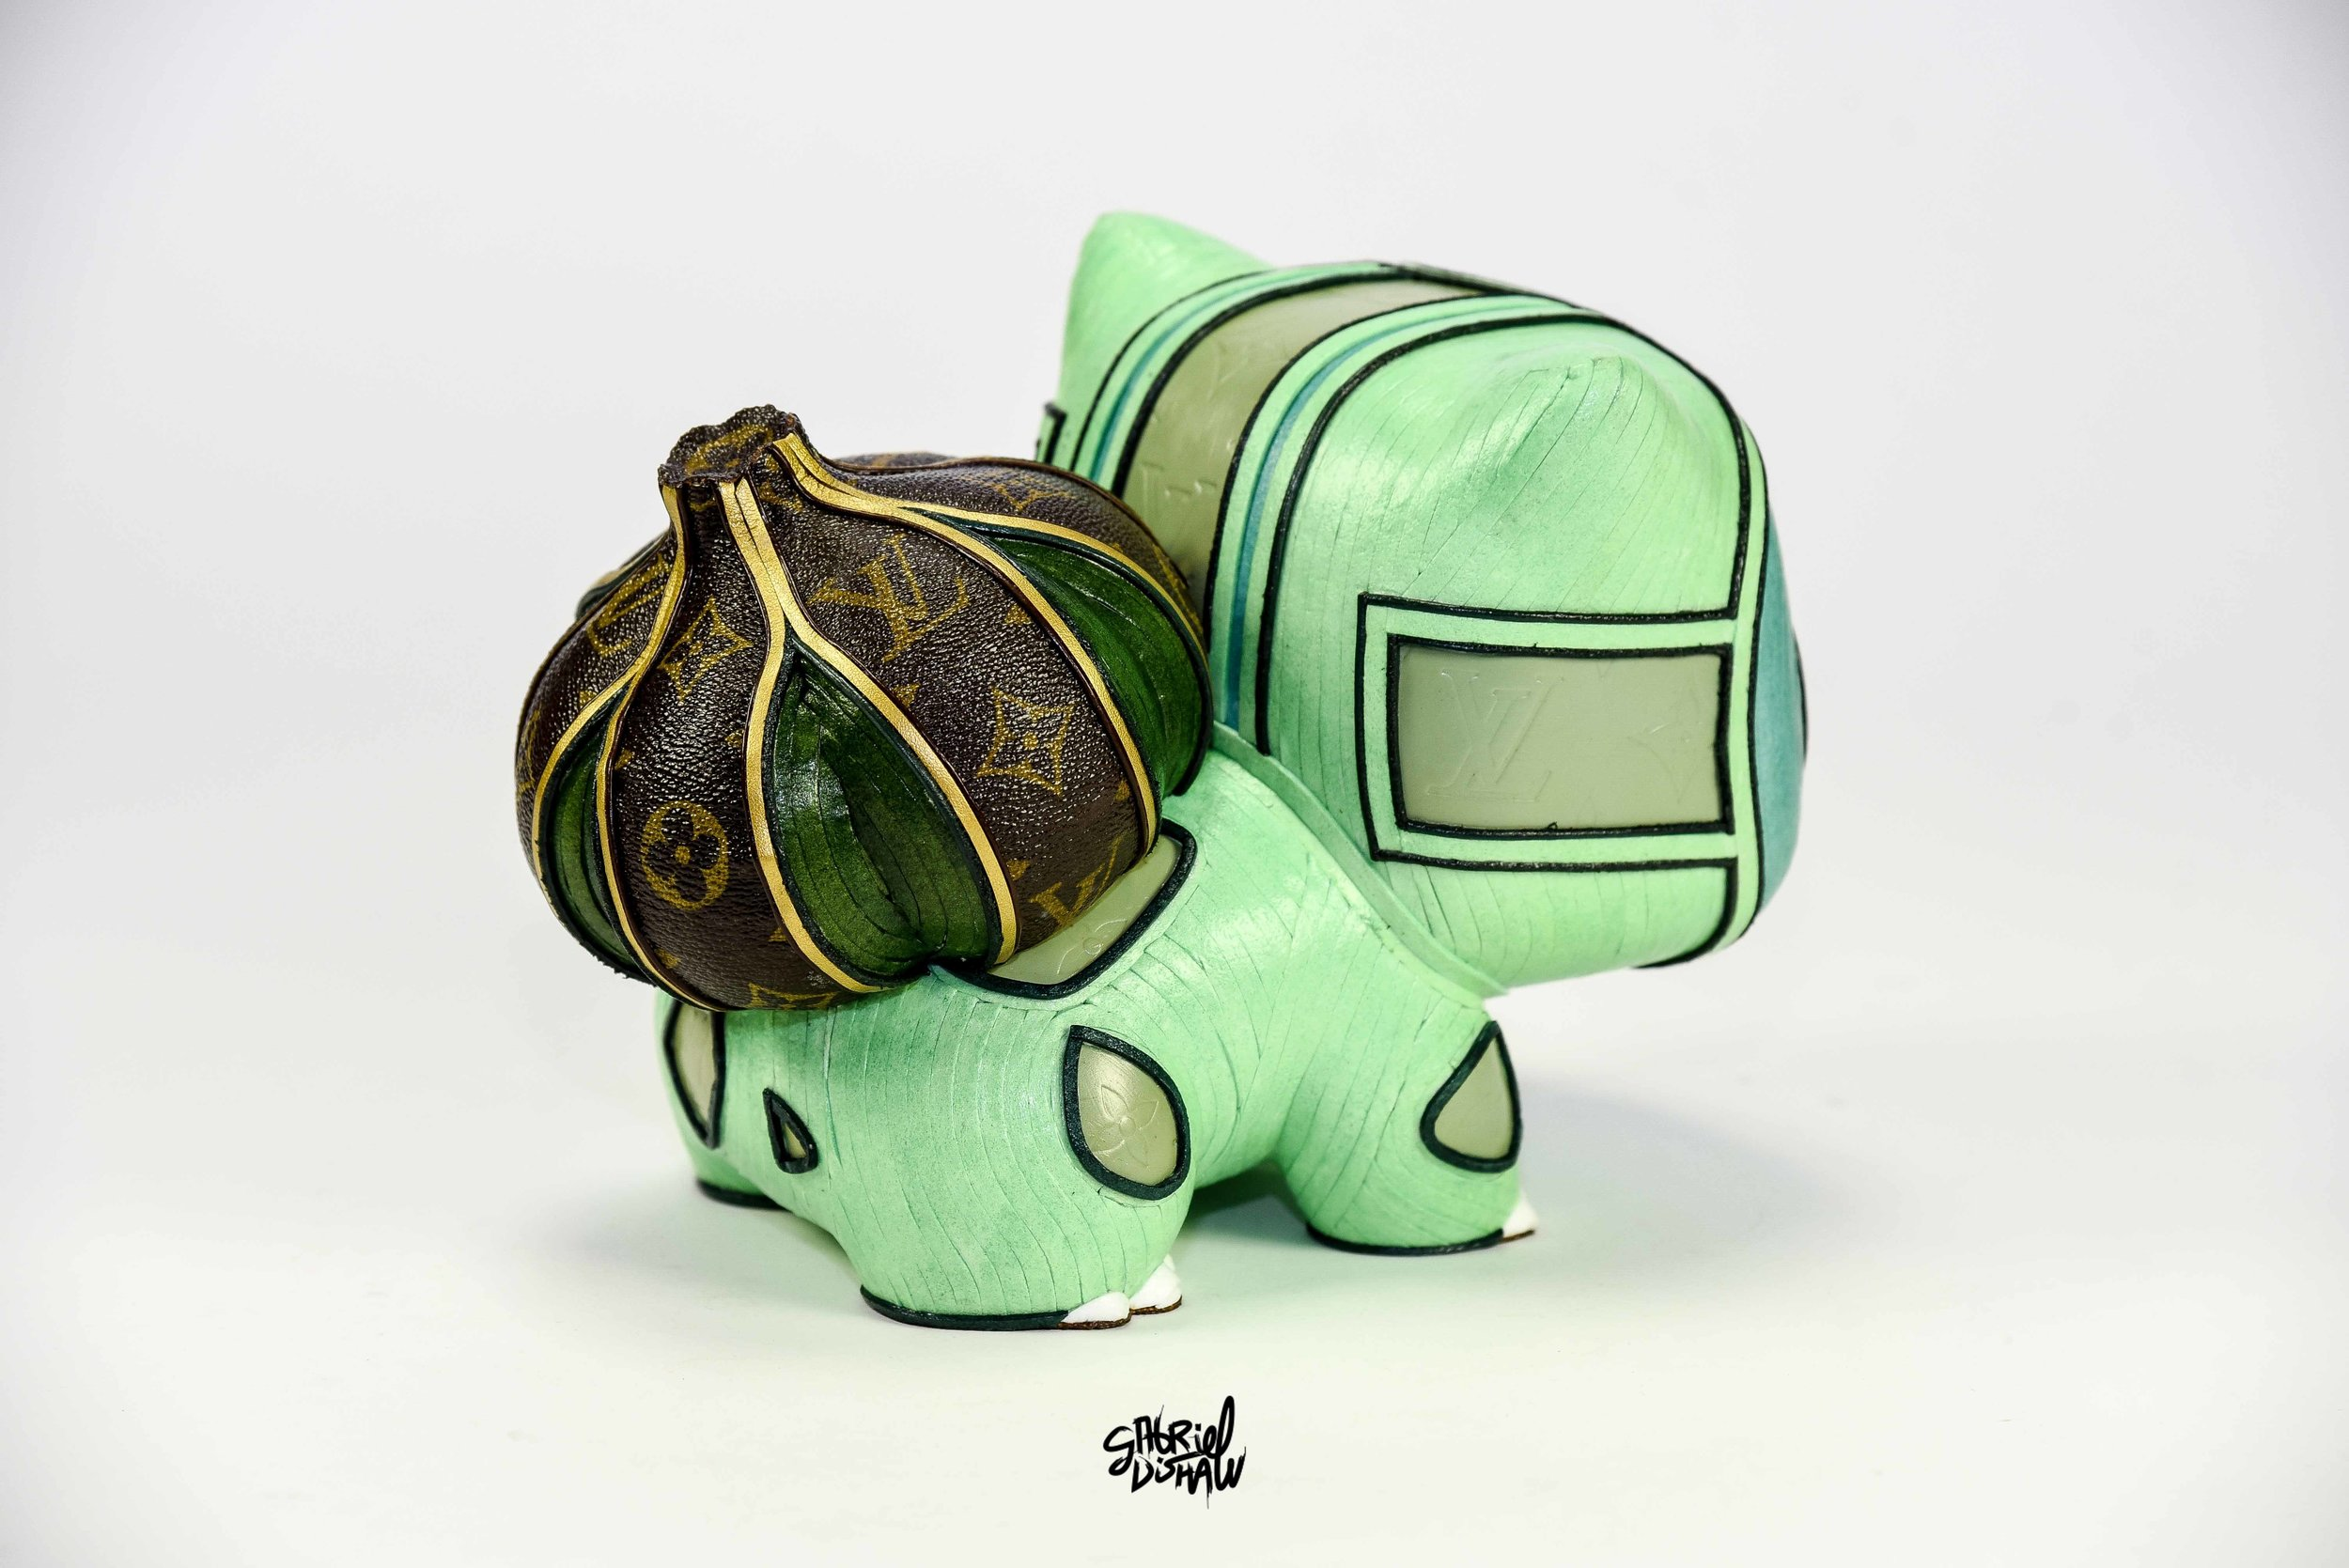 Gabriel Dishaw Bulbasaur LV (90 of 107).jpg